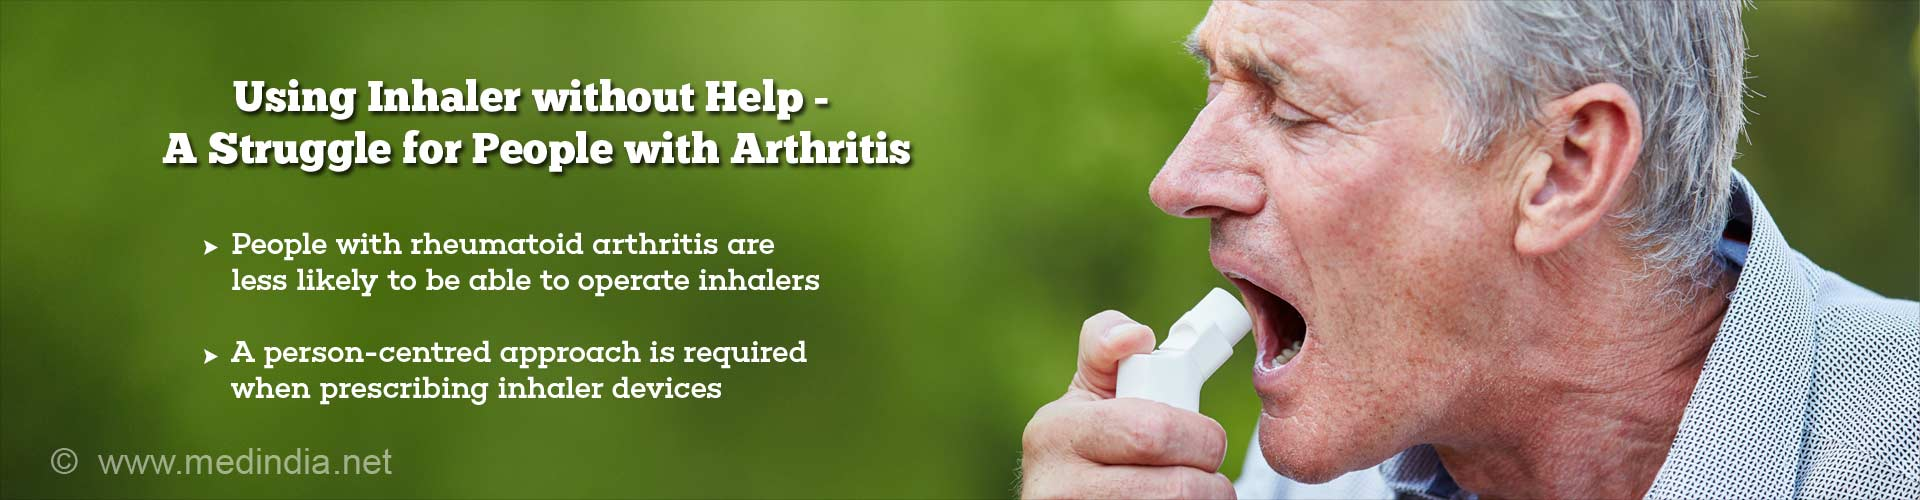 using inhaler without help - a struggle for people with arthritis - people with rheumatoid arthritis are less likely to be able to operate inhalers - a person-centered approach is required when prescribing inhaler devices